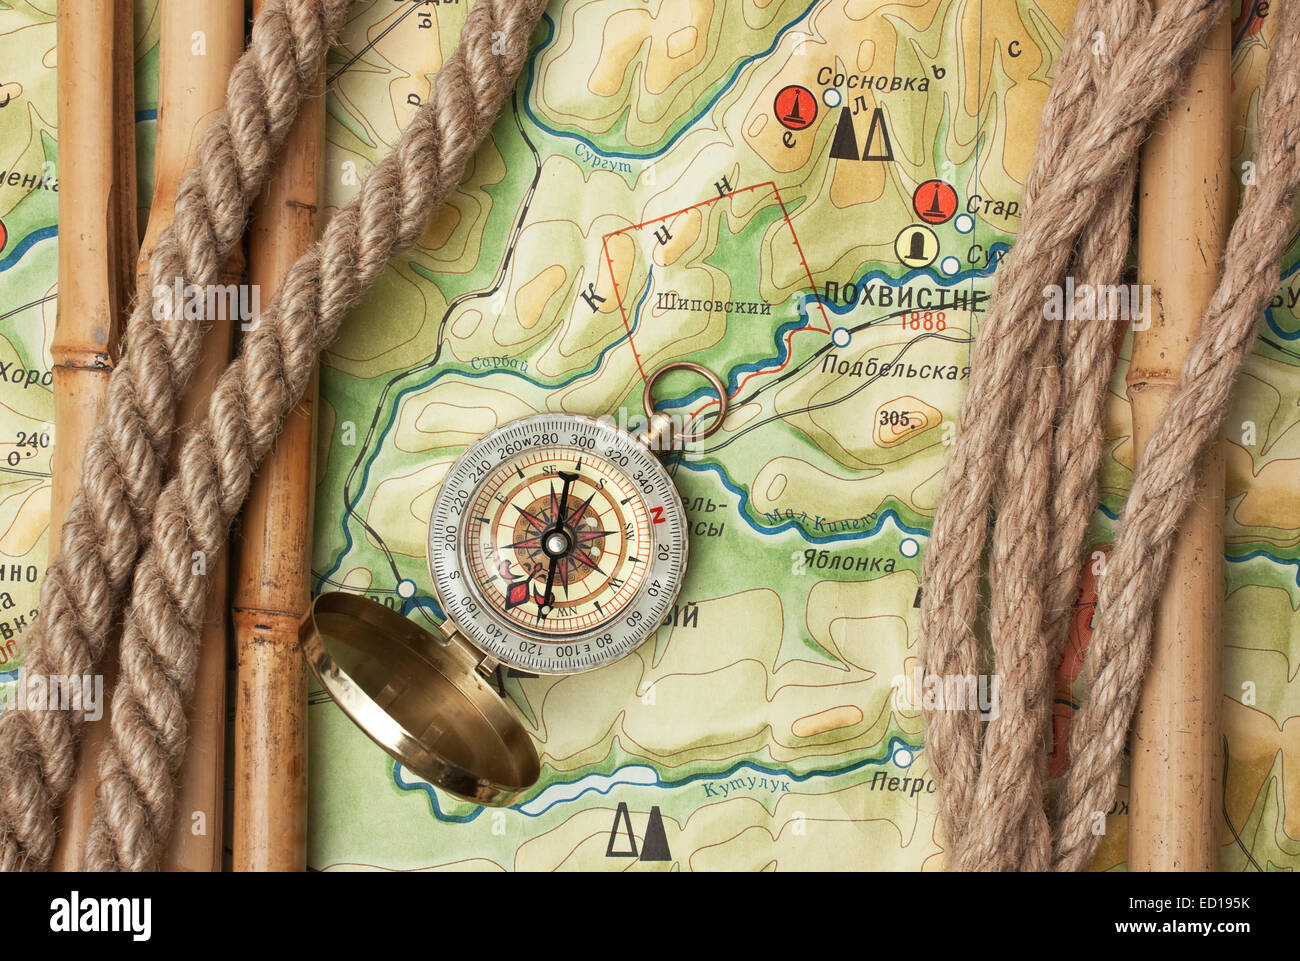 Topographic Map Games.Compass With Ropes And Bamboo On A Topographic Map Stock Photo